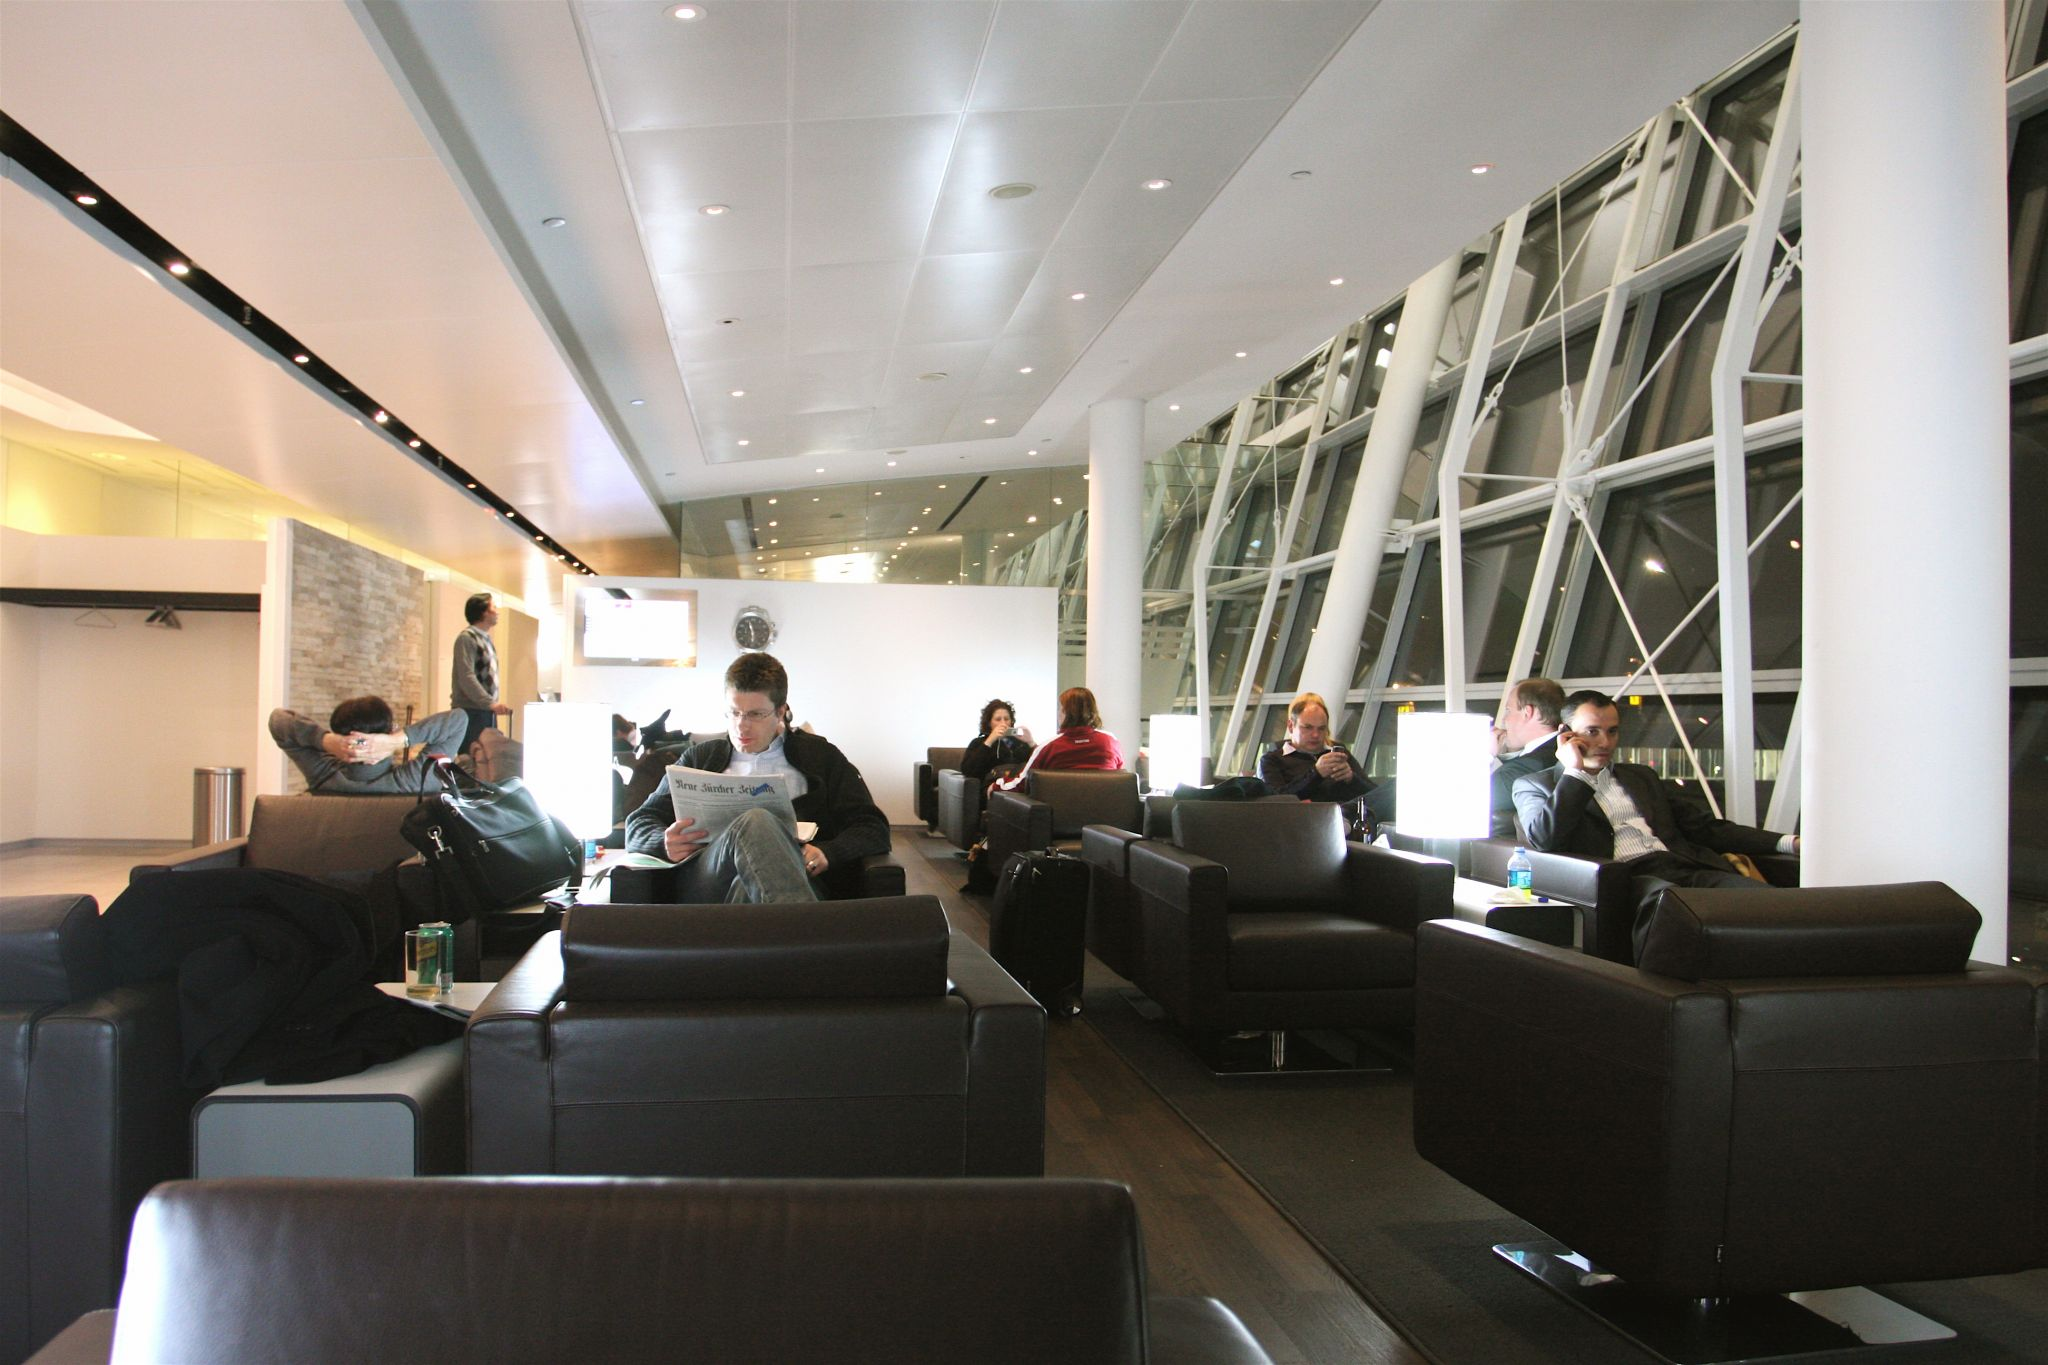 JFK Airport   Swiss International Air Lines Lounge 3119117626 1440x960 - Take The Stress Out Of Airport Travel With These 3 Handy Tips